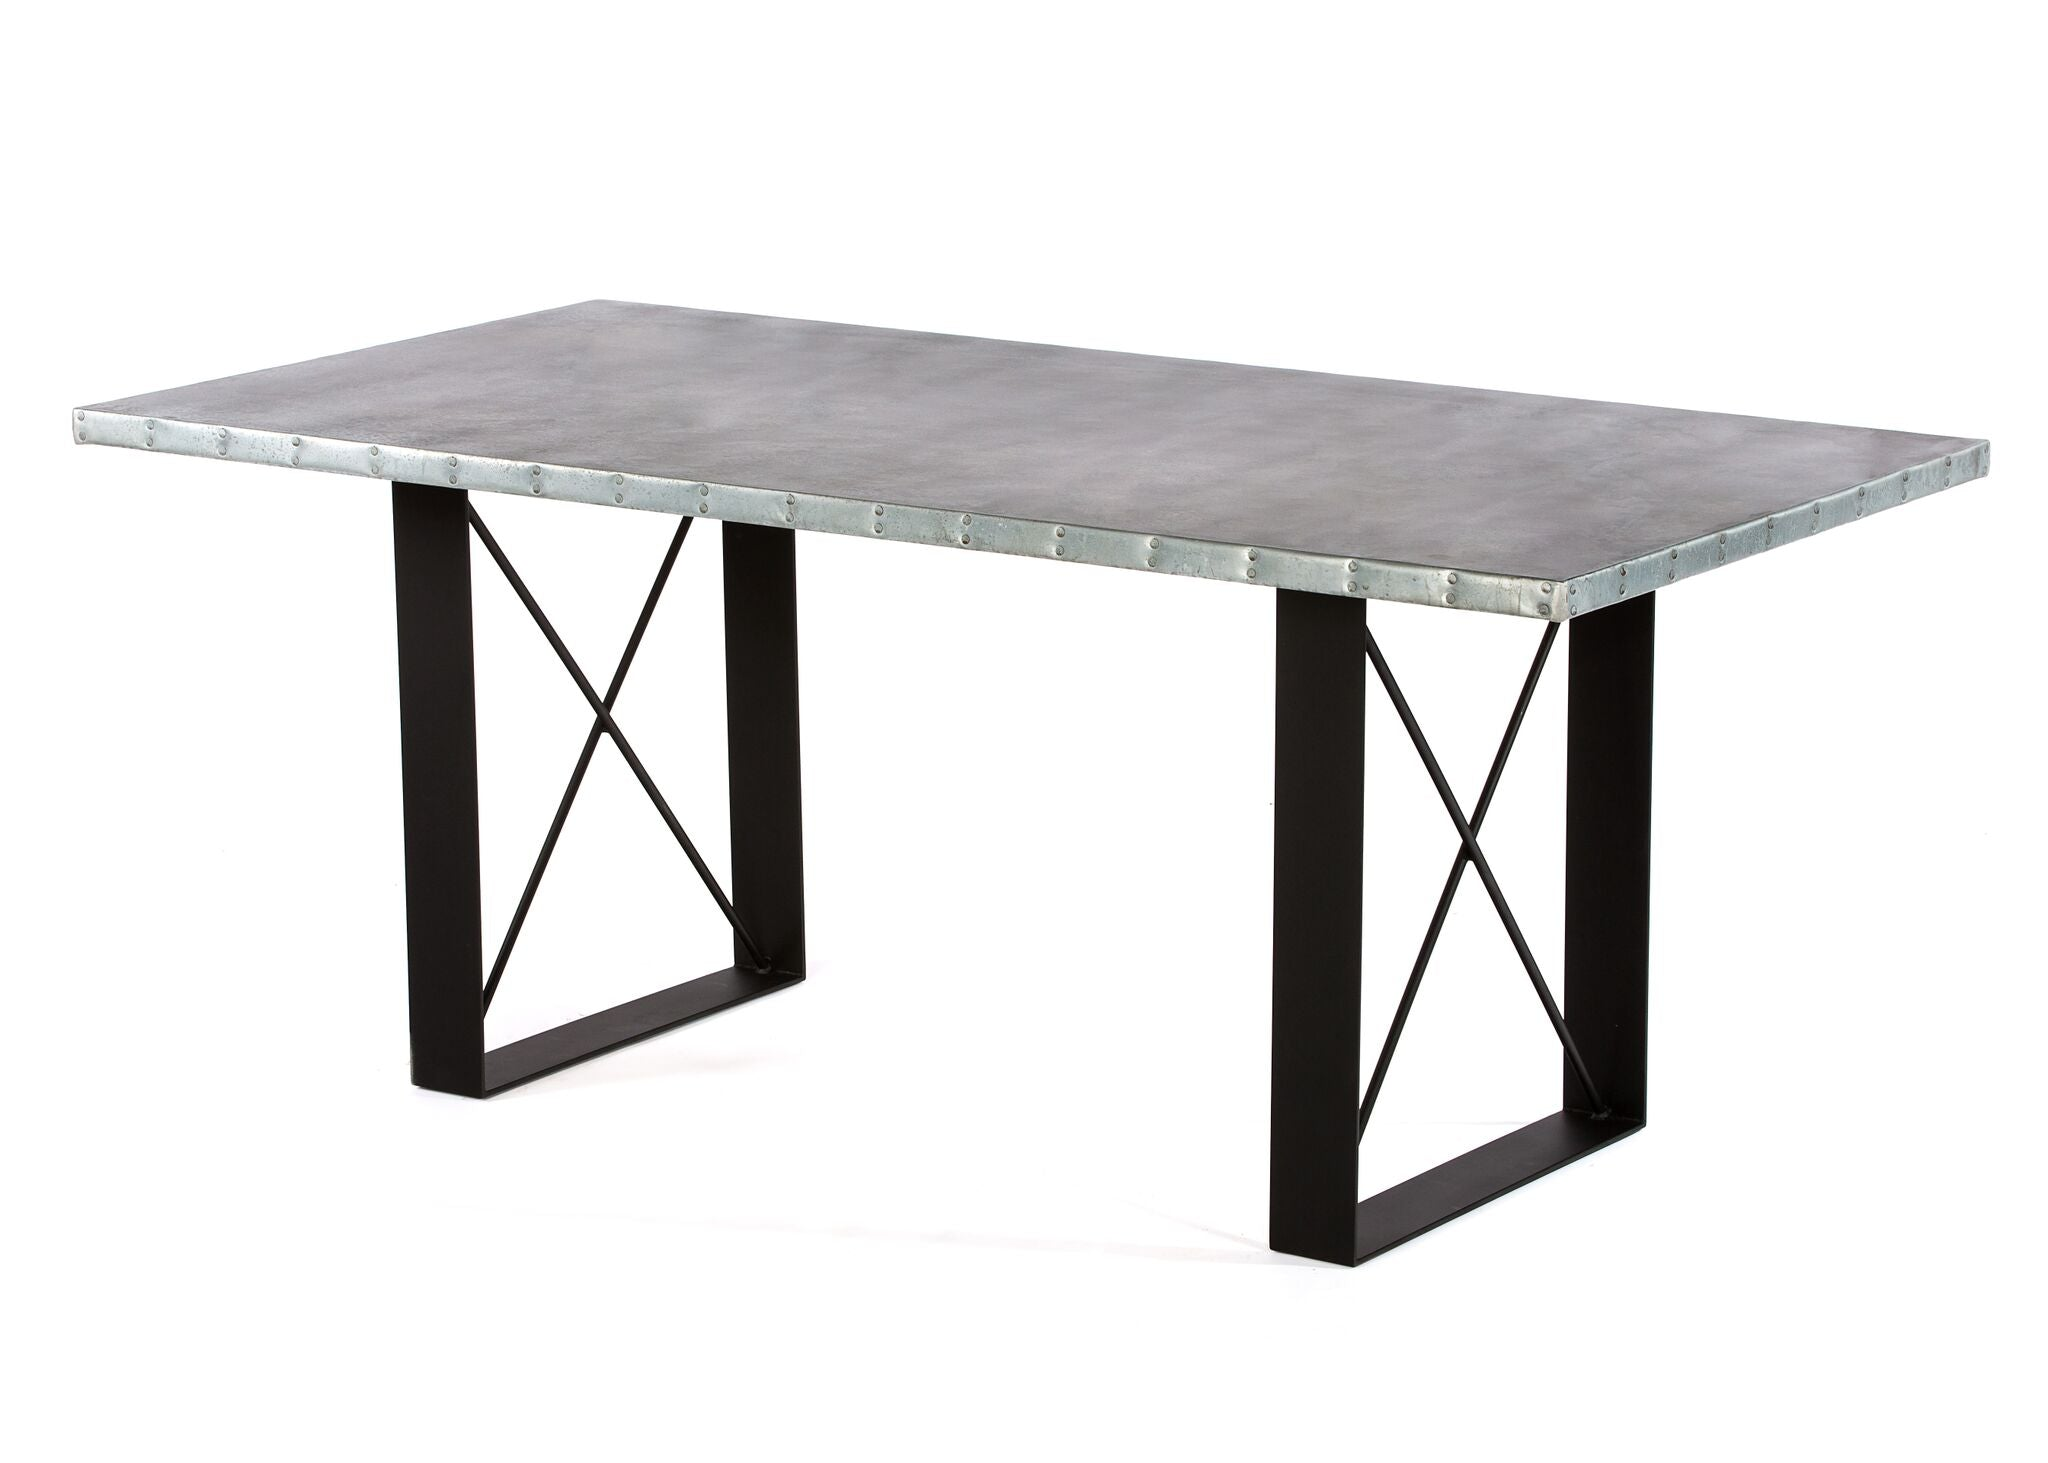 "Zinc Rectangular Table | Soho Table | CLASSIC | Black | CUSTOM SIZE L 60 W 37 H 30 | 1.5"" Standard 